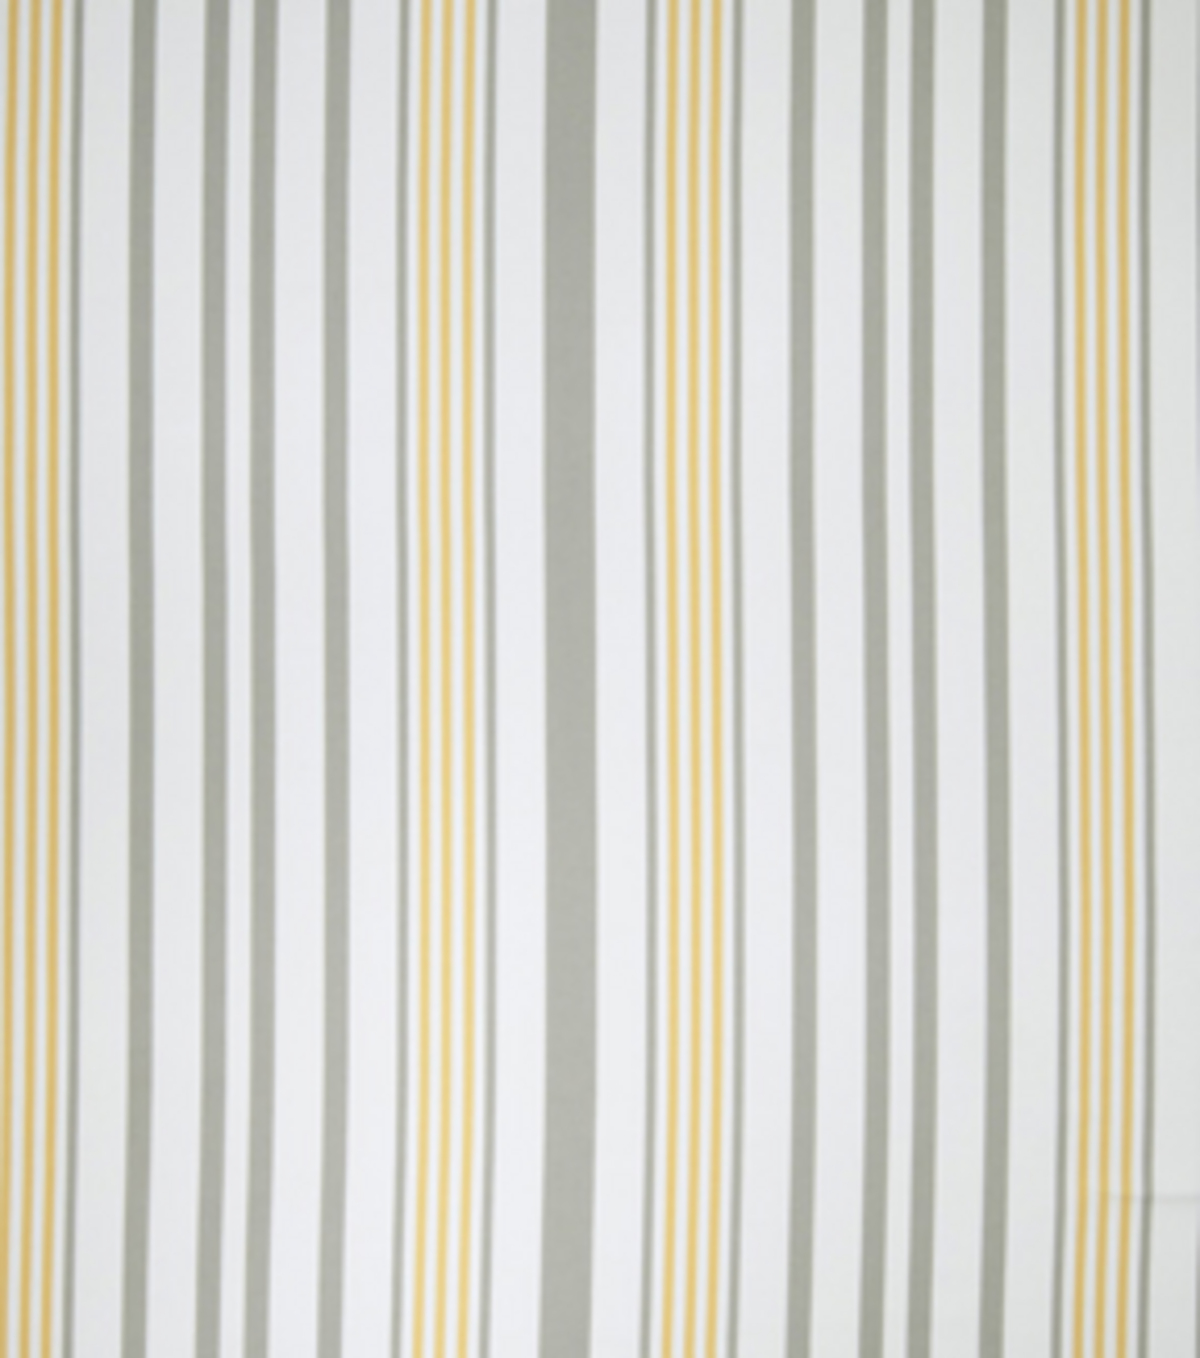 Home Decor 8\u0022x8\u0022 Fabric Swatch-Eaton Square Schooner   Pewter